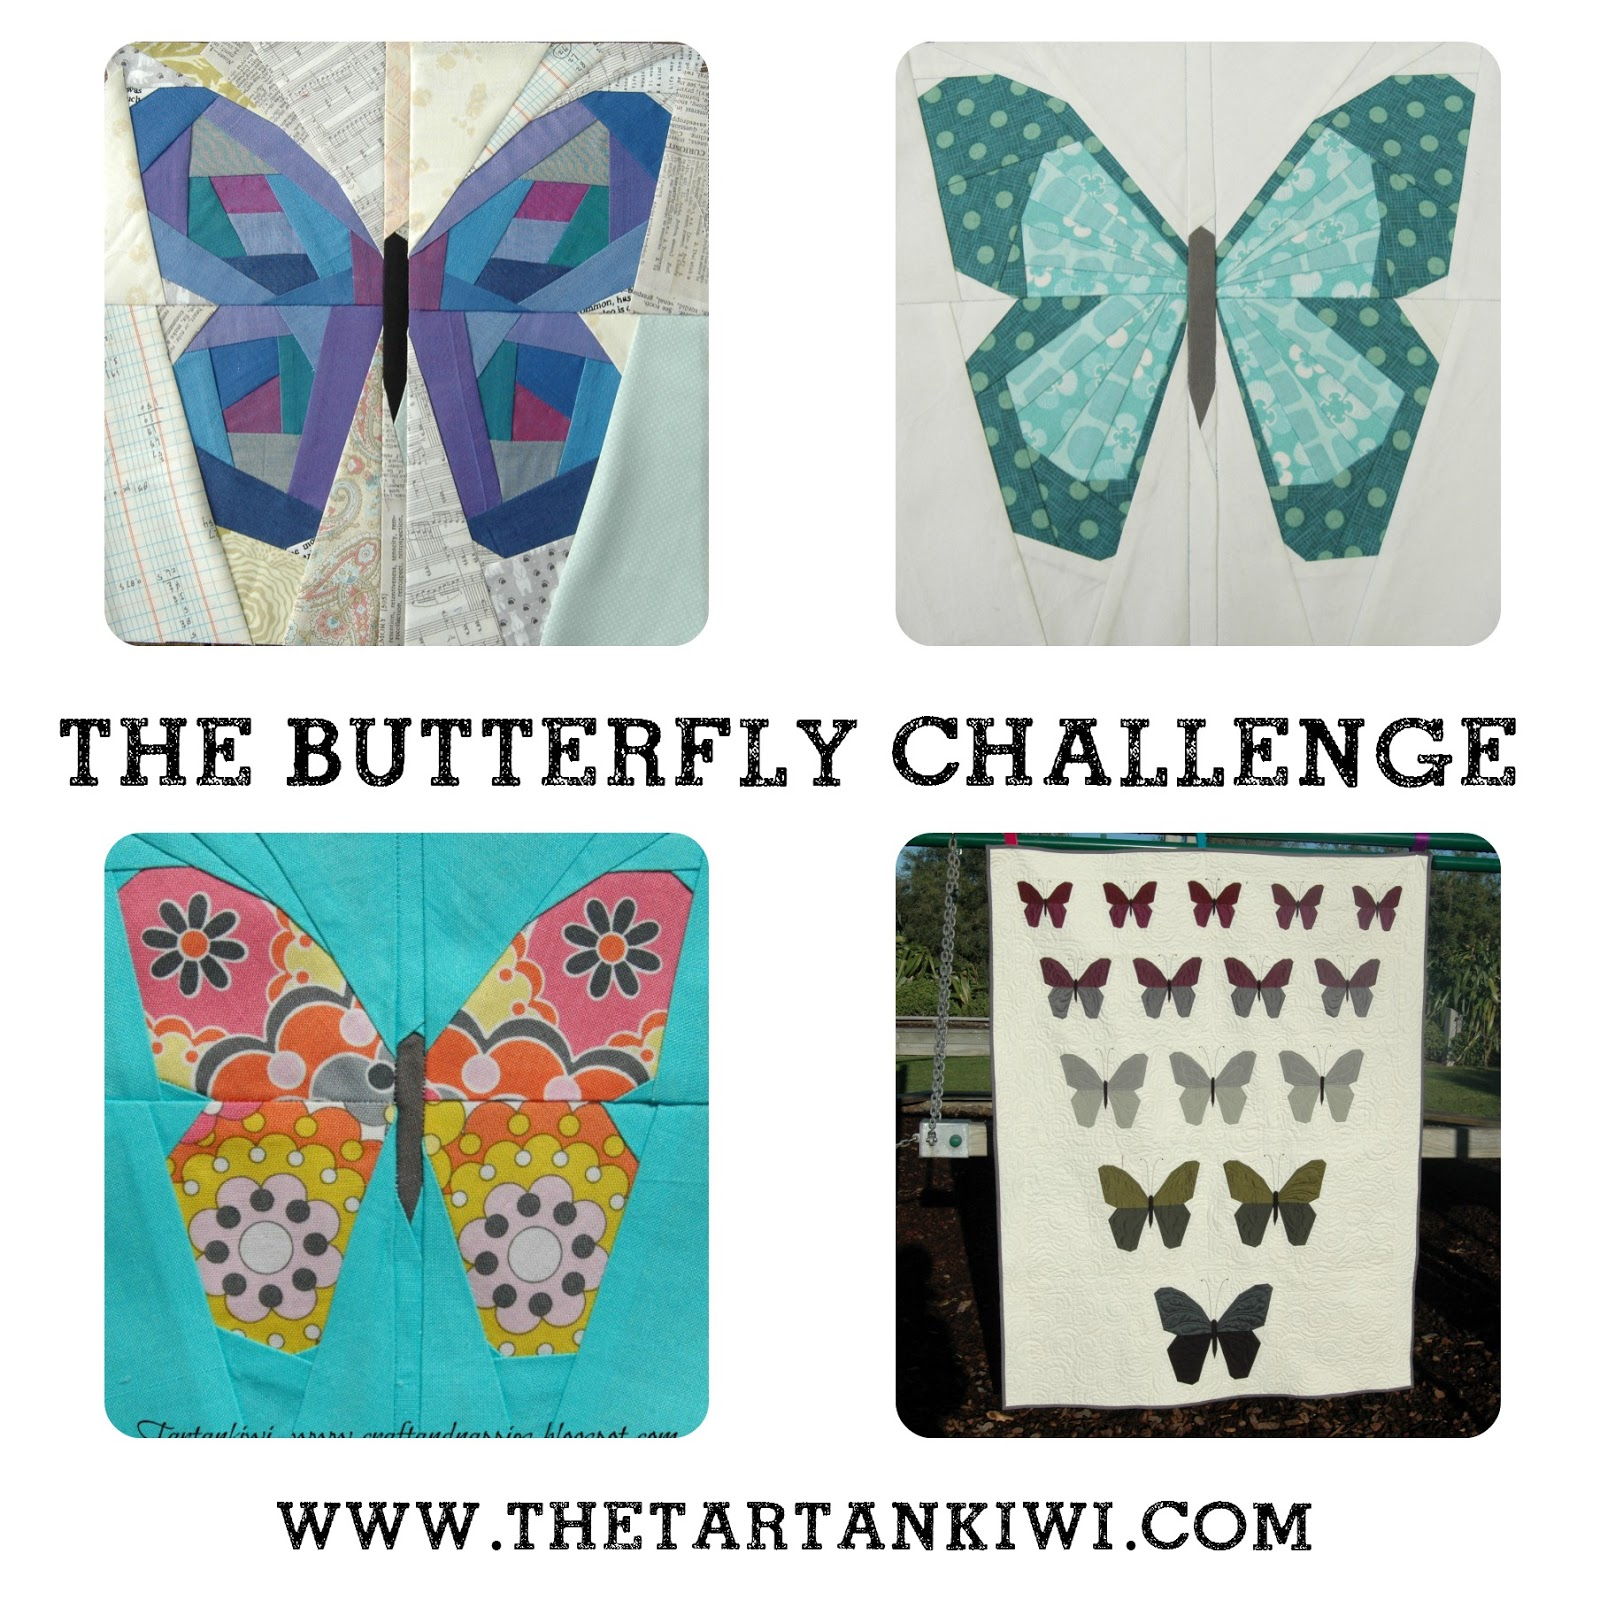 http://www.thetartankiwi.com/search/label/butterfly%20challenge